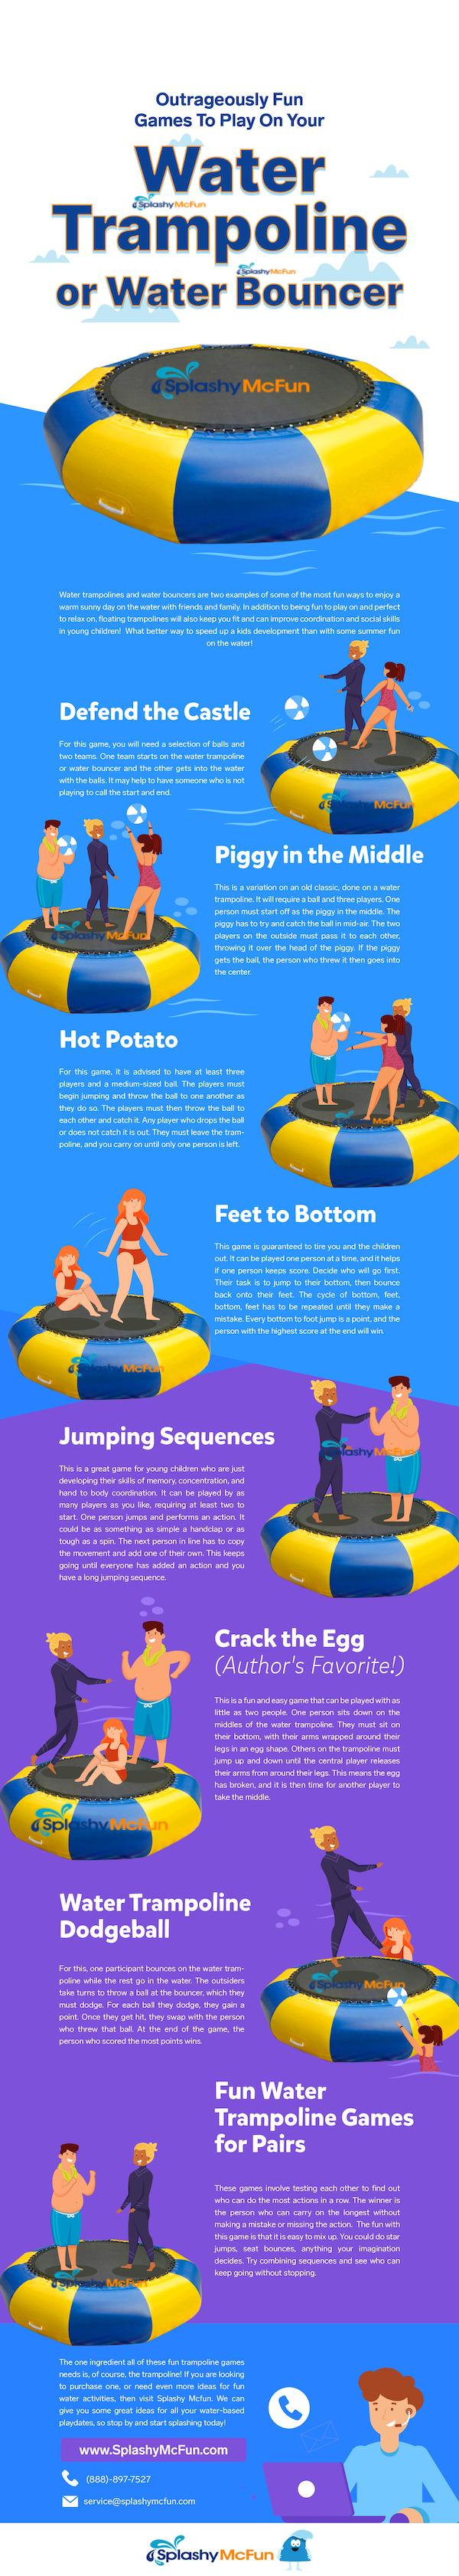 Outrageously fun games to play on your water trampoline infographic. Shows all of the fun games for people to play on their water trampolines or water bouncers.